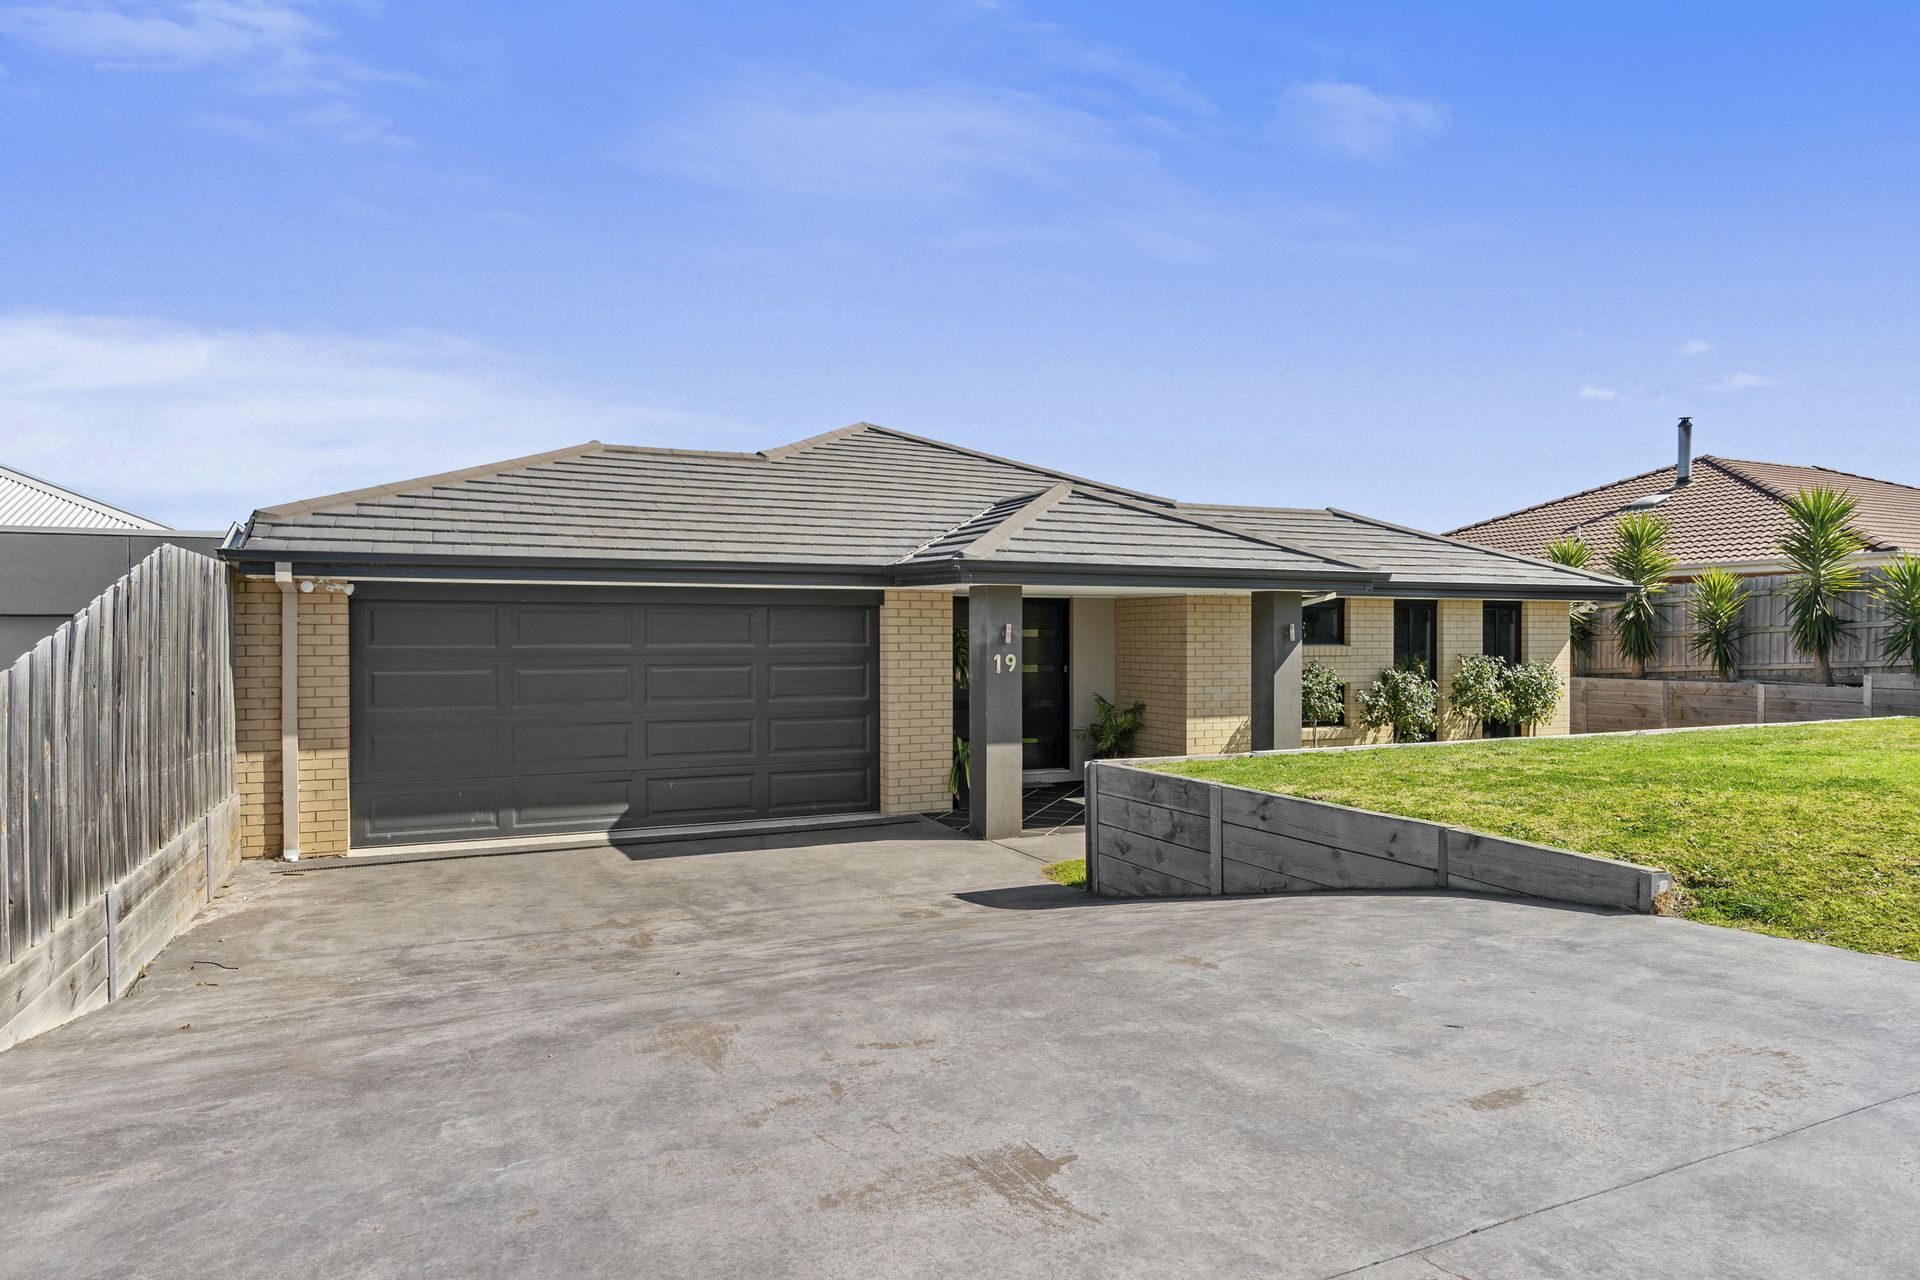 19 Westbury Way, Lakes Entrance VIC 3909-1